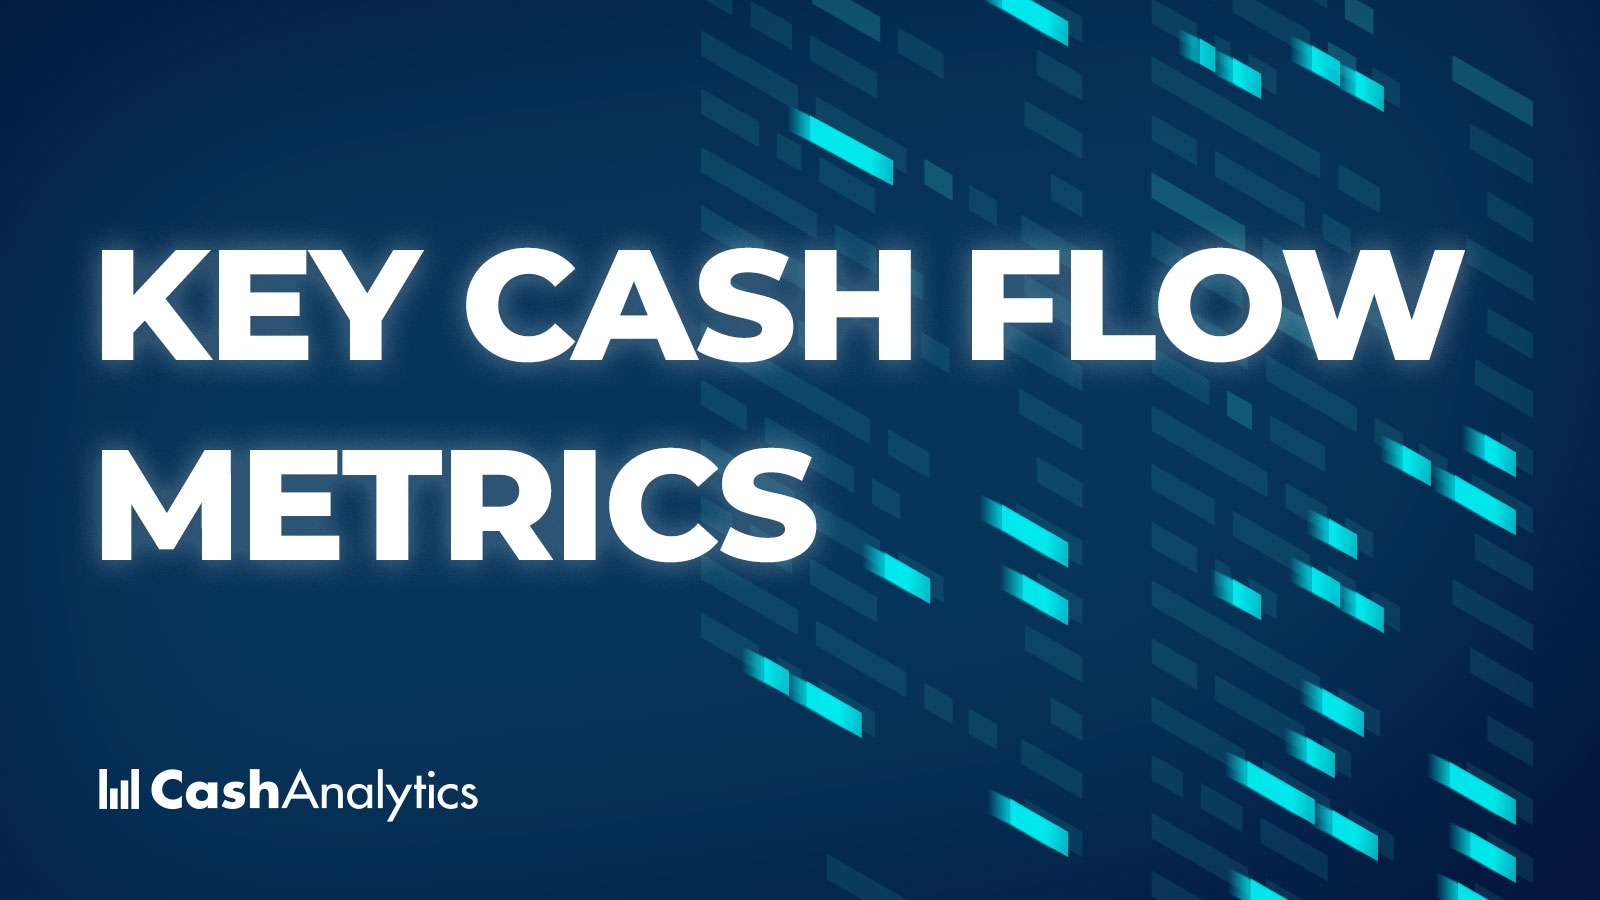 Image for The Key Cash Flow Metrics All Large Companies Should Track